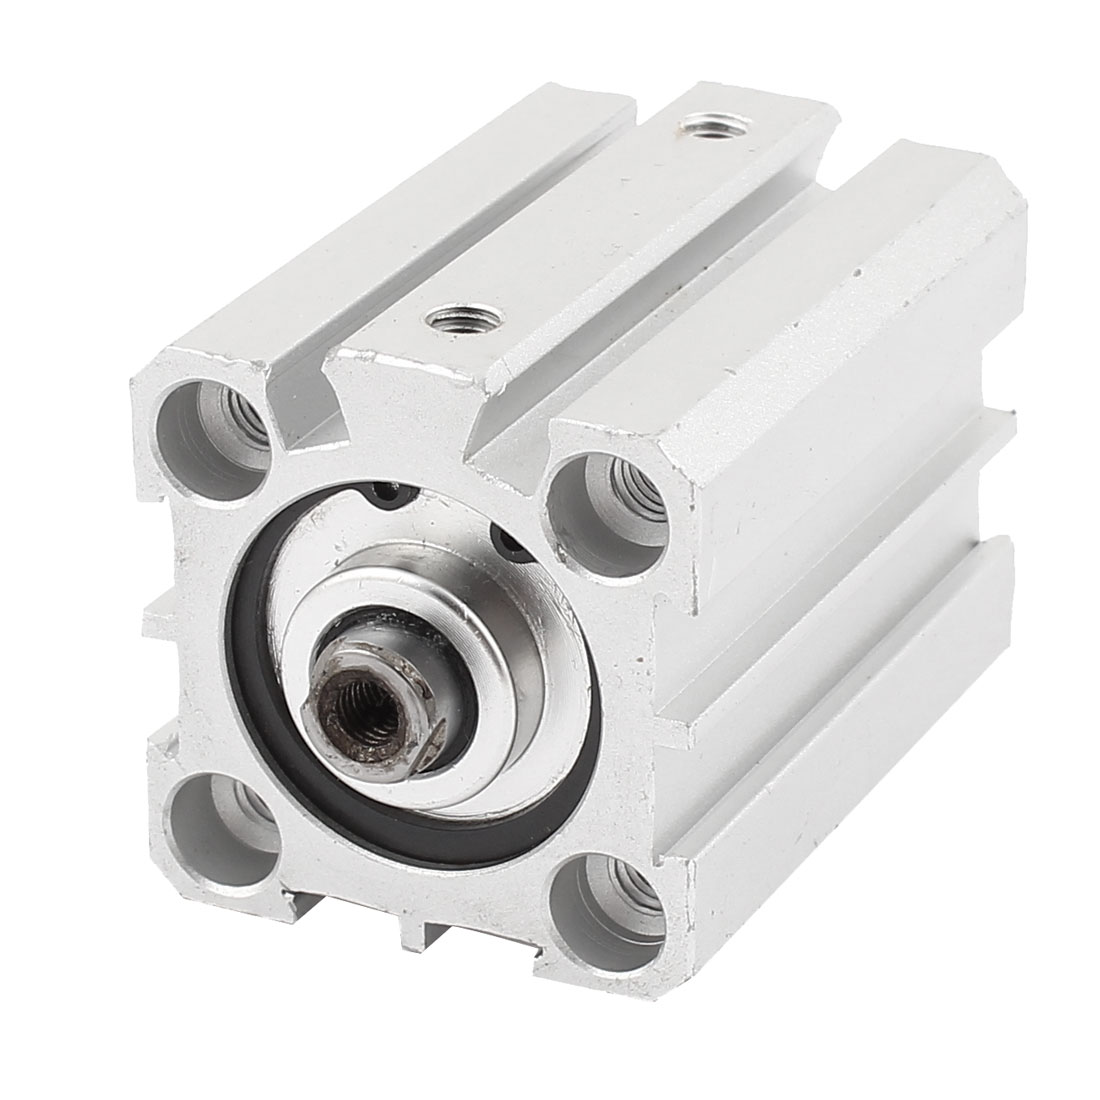 SDA25x35 25mm Bore 35mm Stroke Dual Action Single Rod Pneumatic Air Cylinder